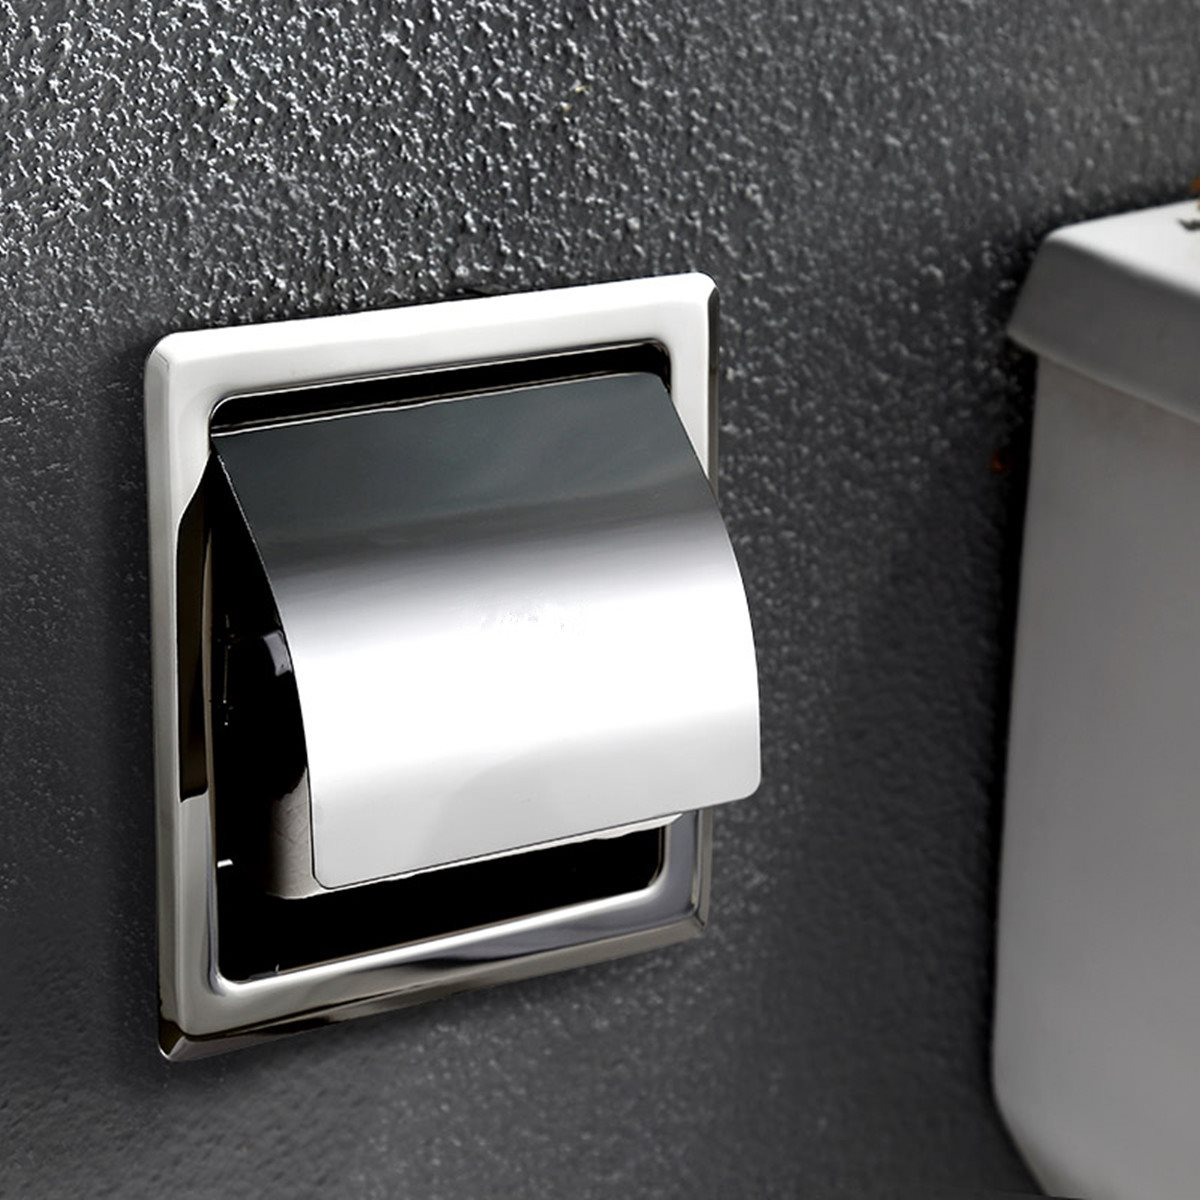 Concealed Toilet Paper Holder Popular Concealed Toilet Paper Holder Buy Cheap Concealed